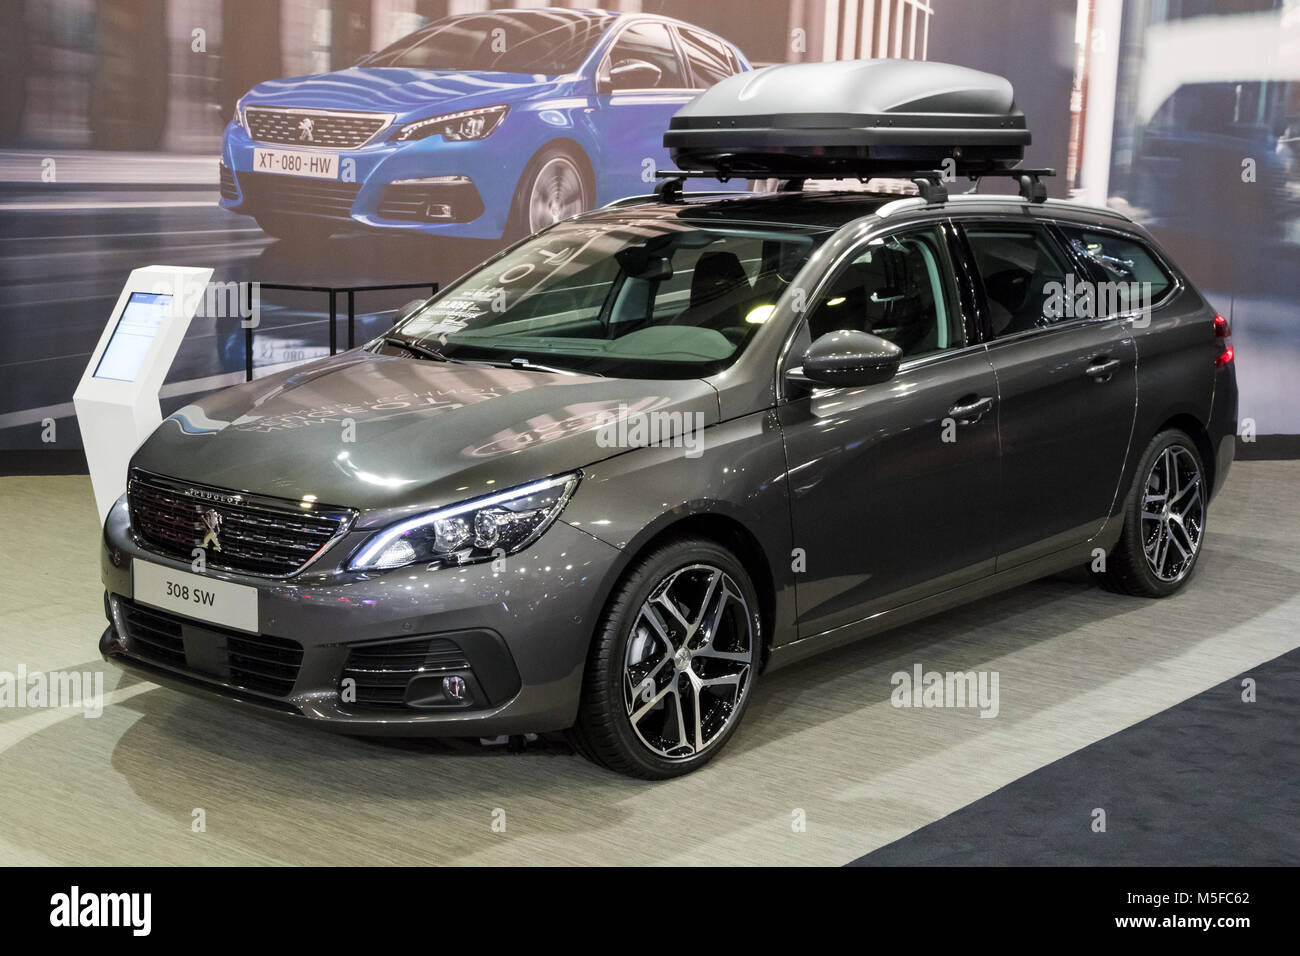 brussels jan 10 2018 peugeot 308 sw station wagon car shown at stock photo 175515818 alamy. Black Bedroom Furniture Sets. Home Design Ideas